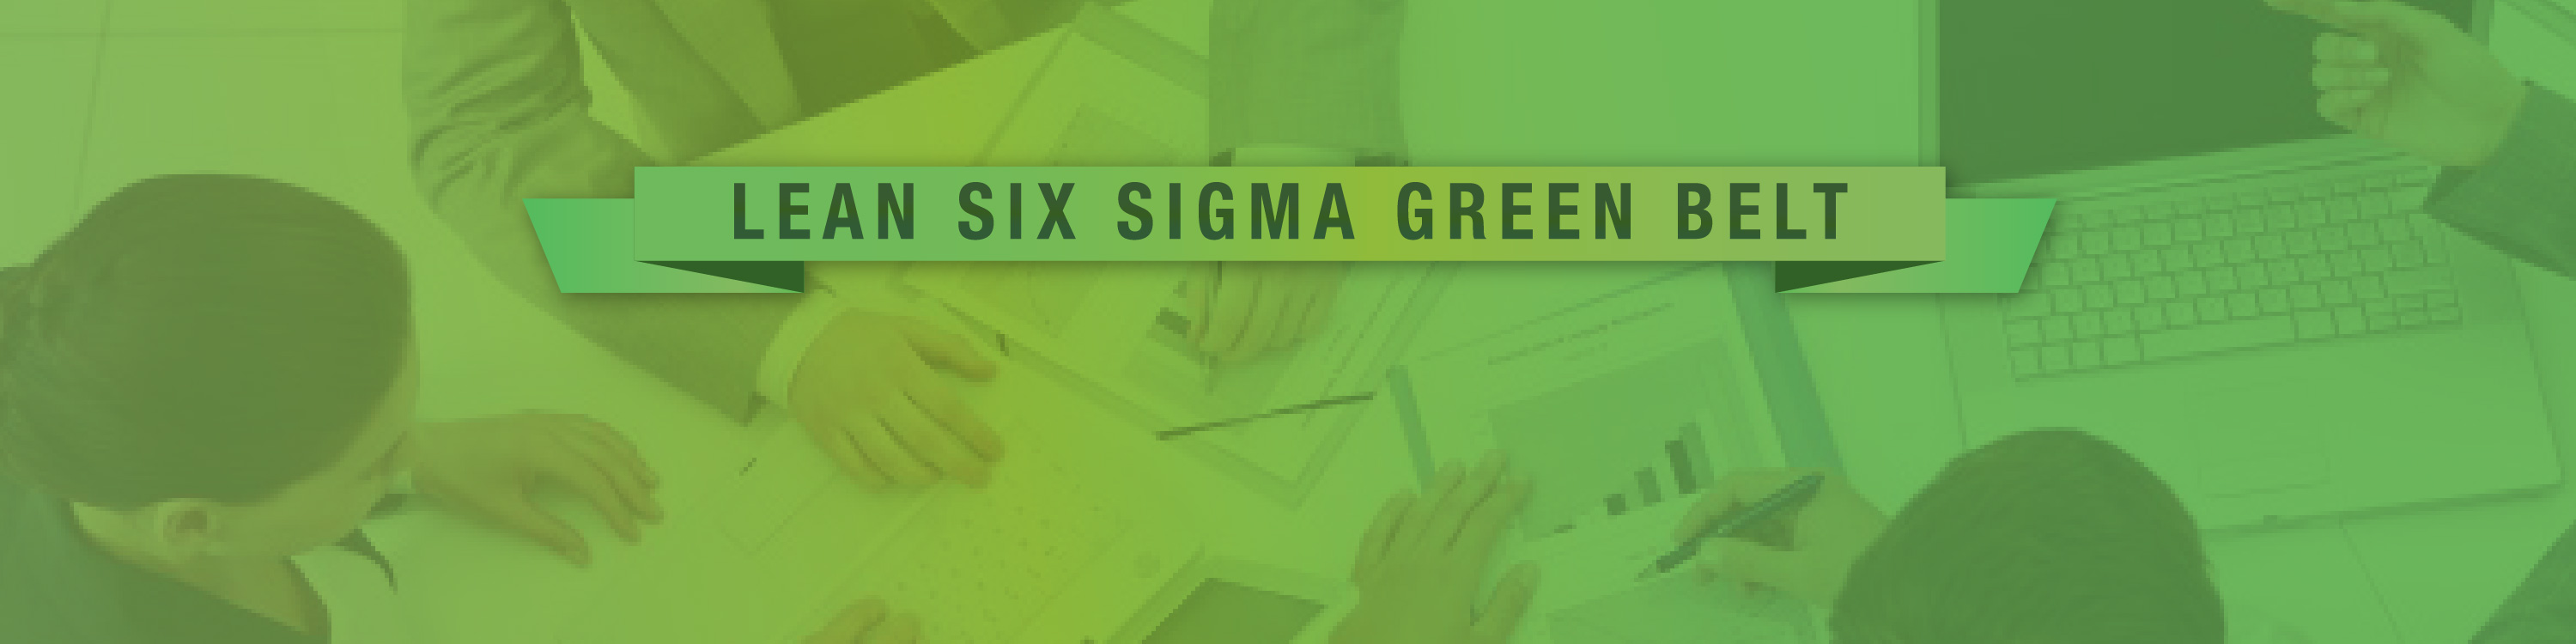 Lean Six Sigma Green Belt 5 Days Black Belt Module 1 July 2018